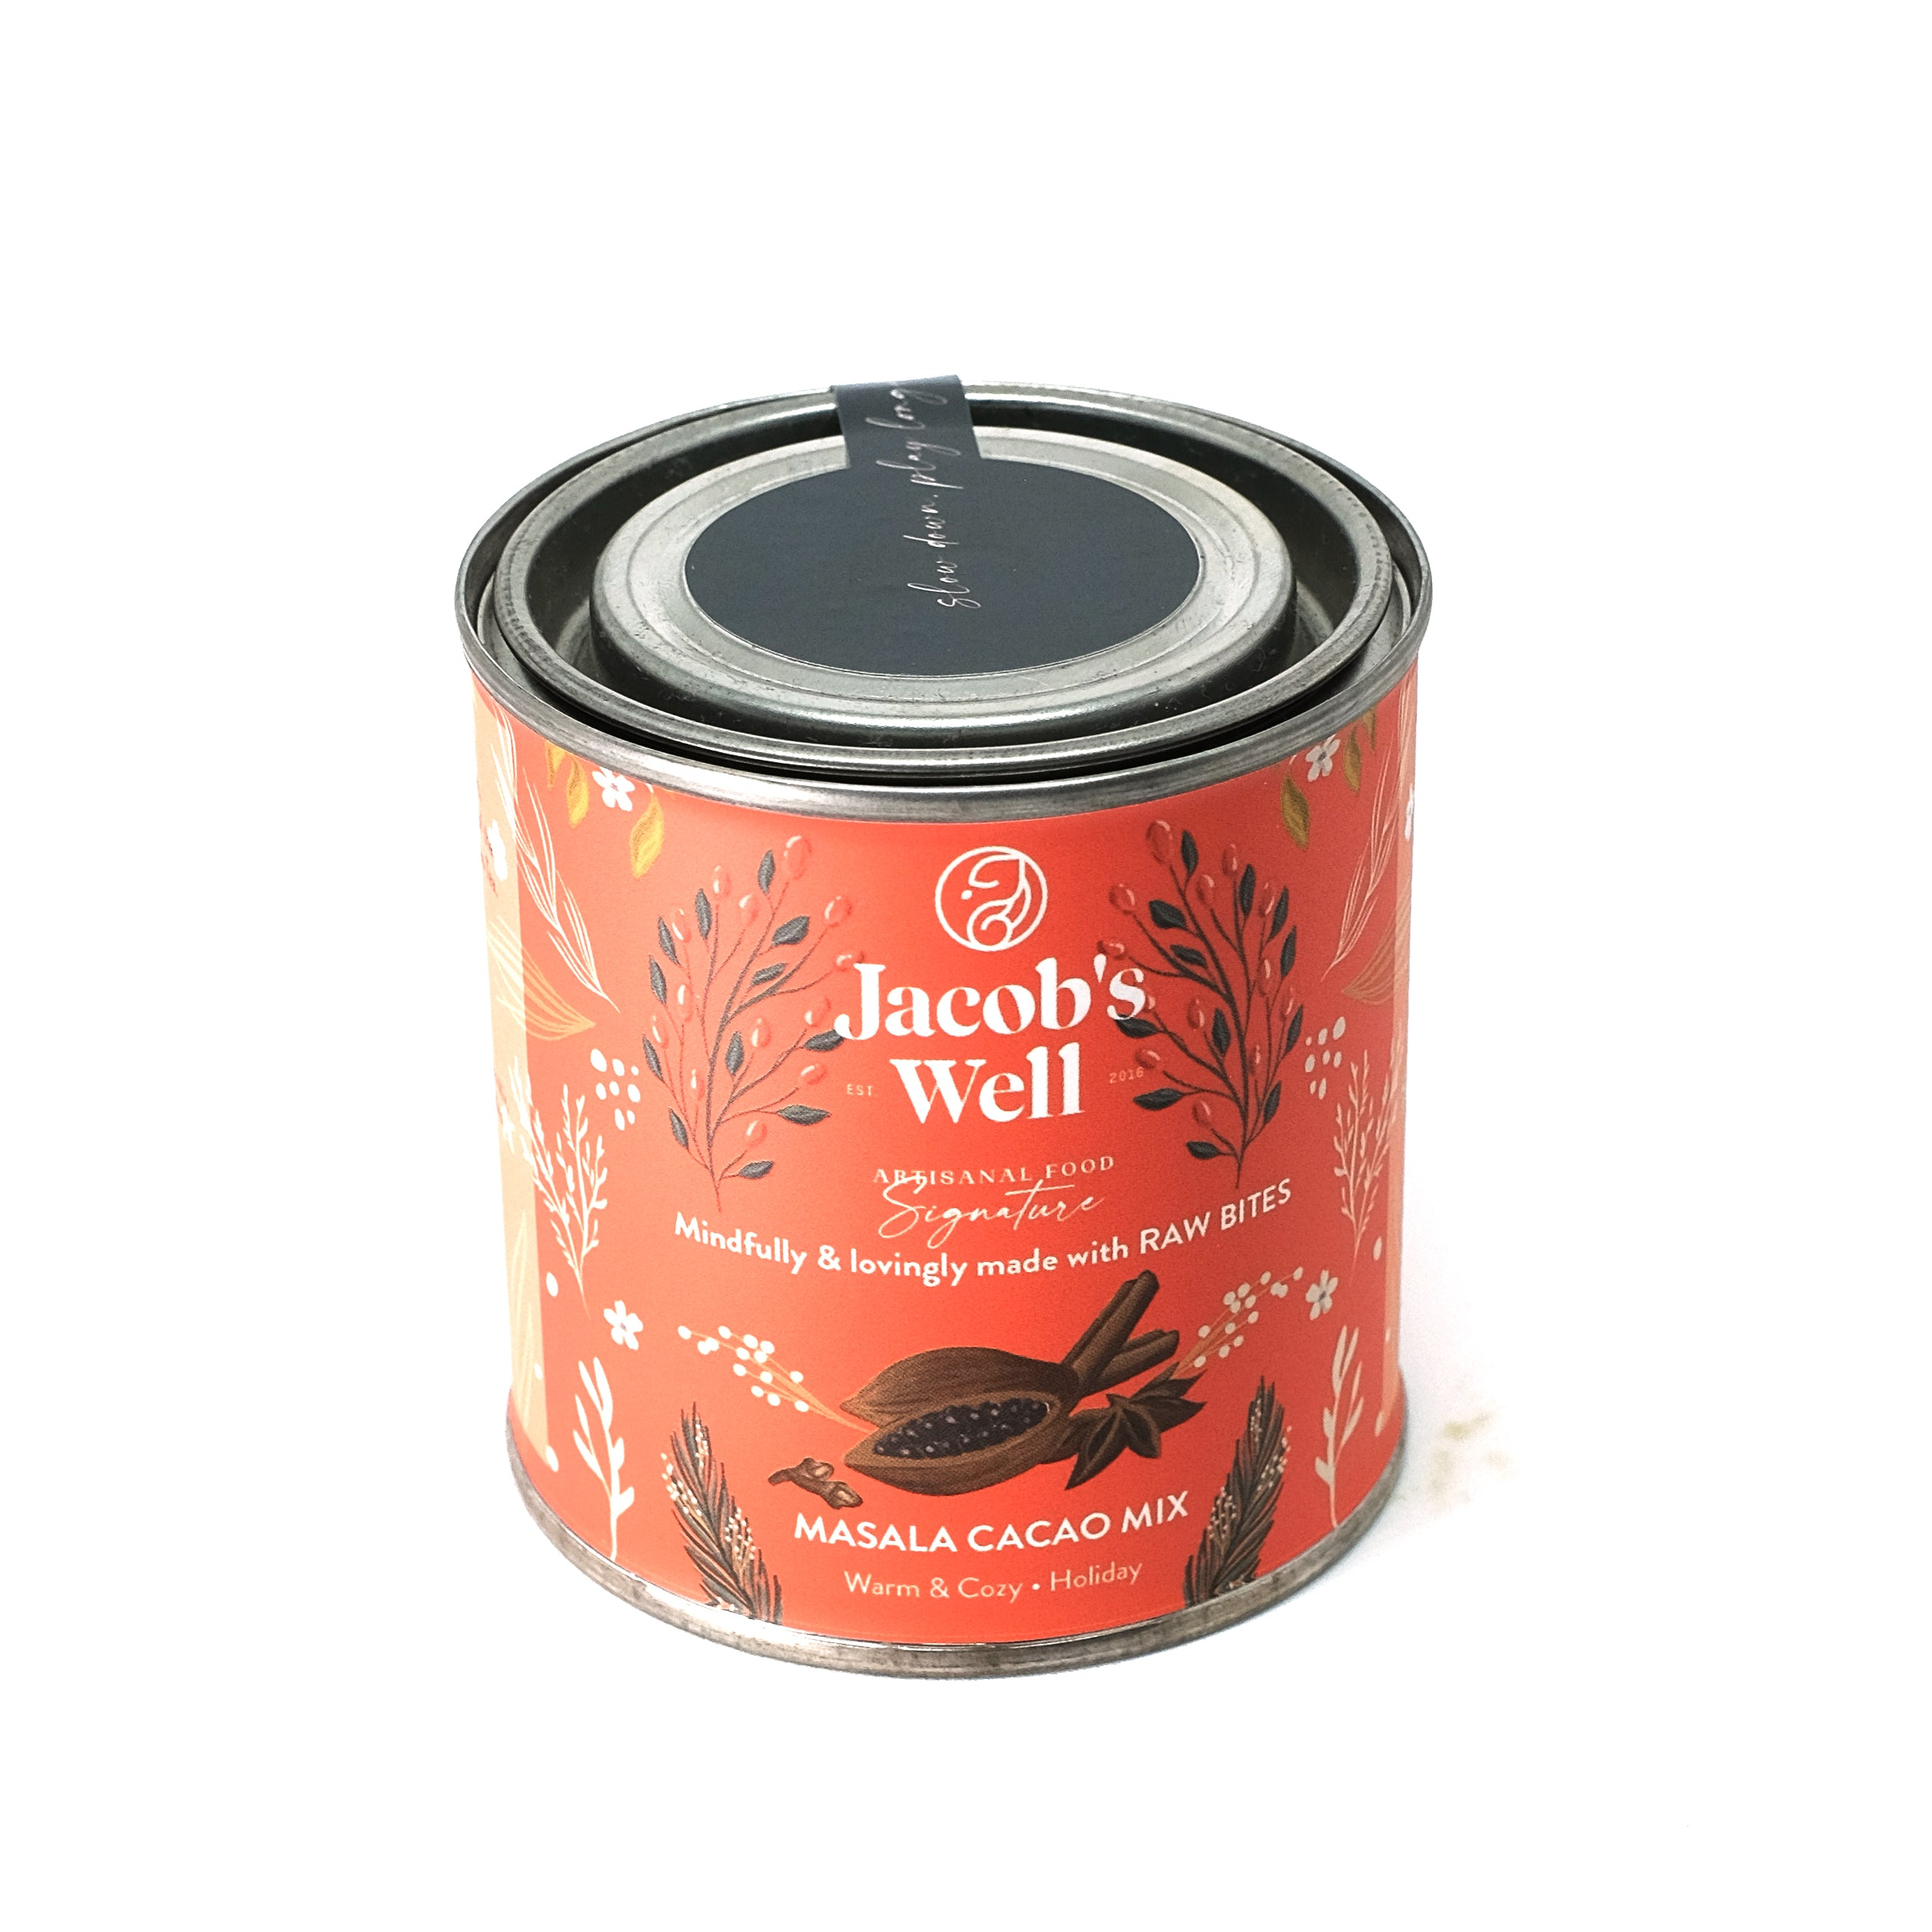 Jacob's Well Signature - Masala Cacao Mix (90g)